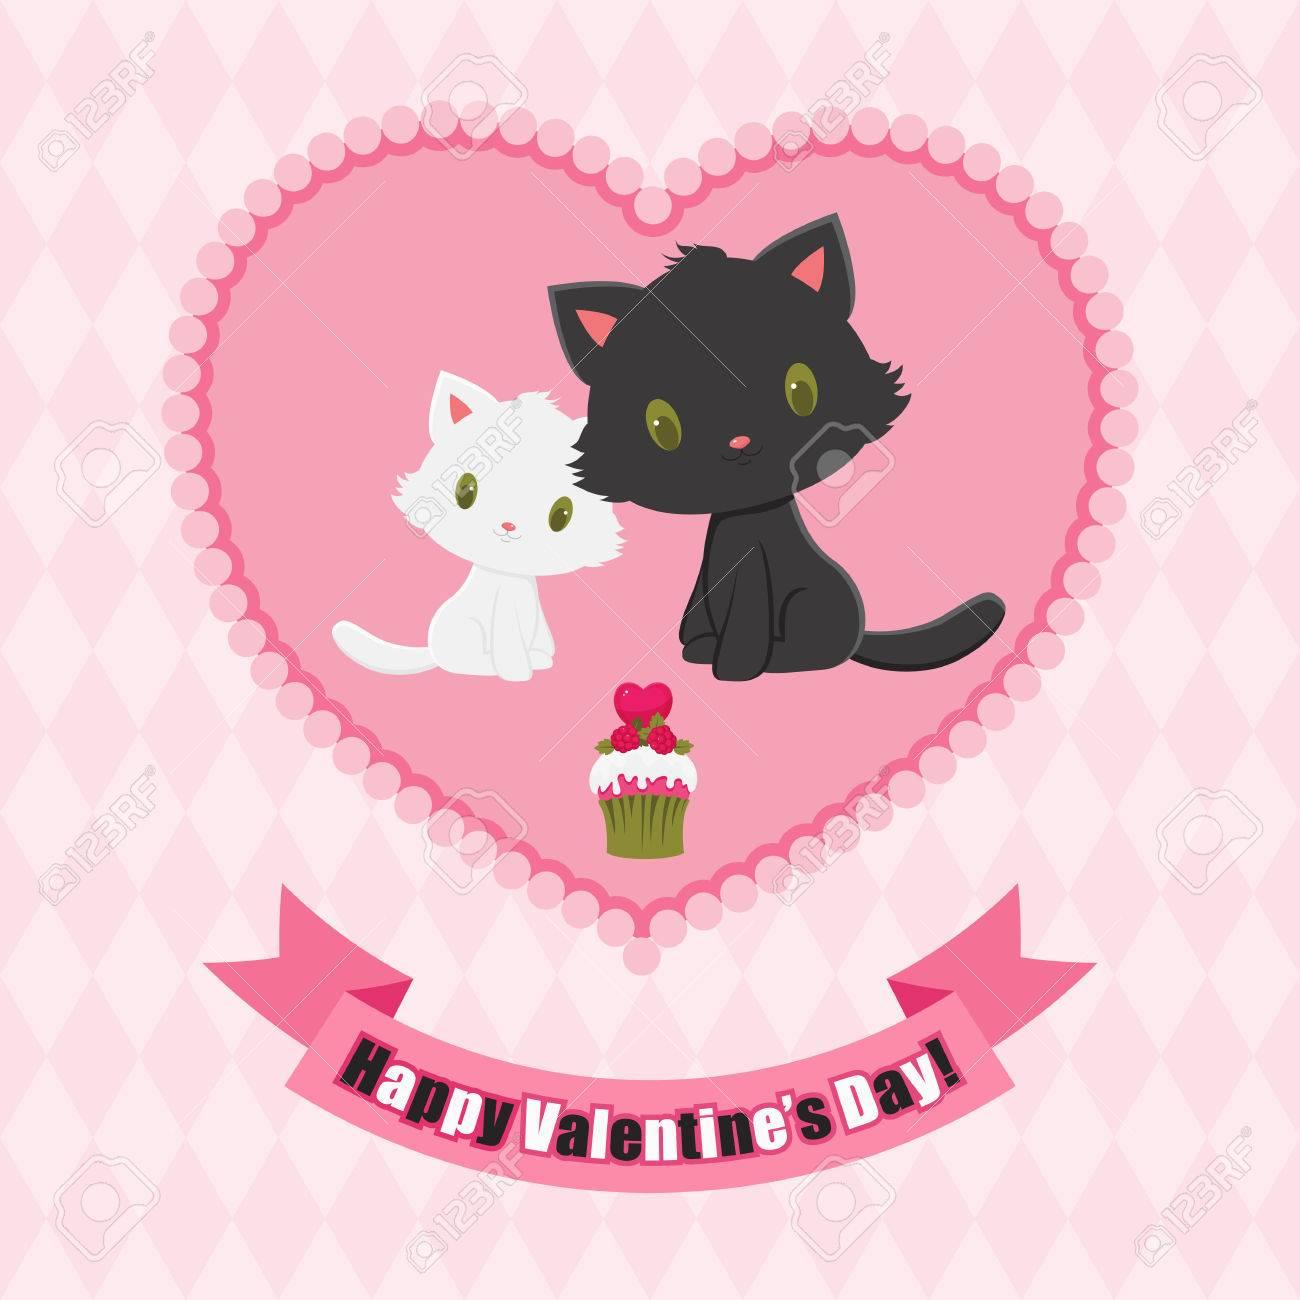 Valentine S Day Greeting Card Black And White Kittens In Love